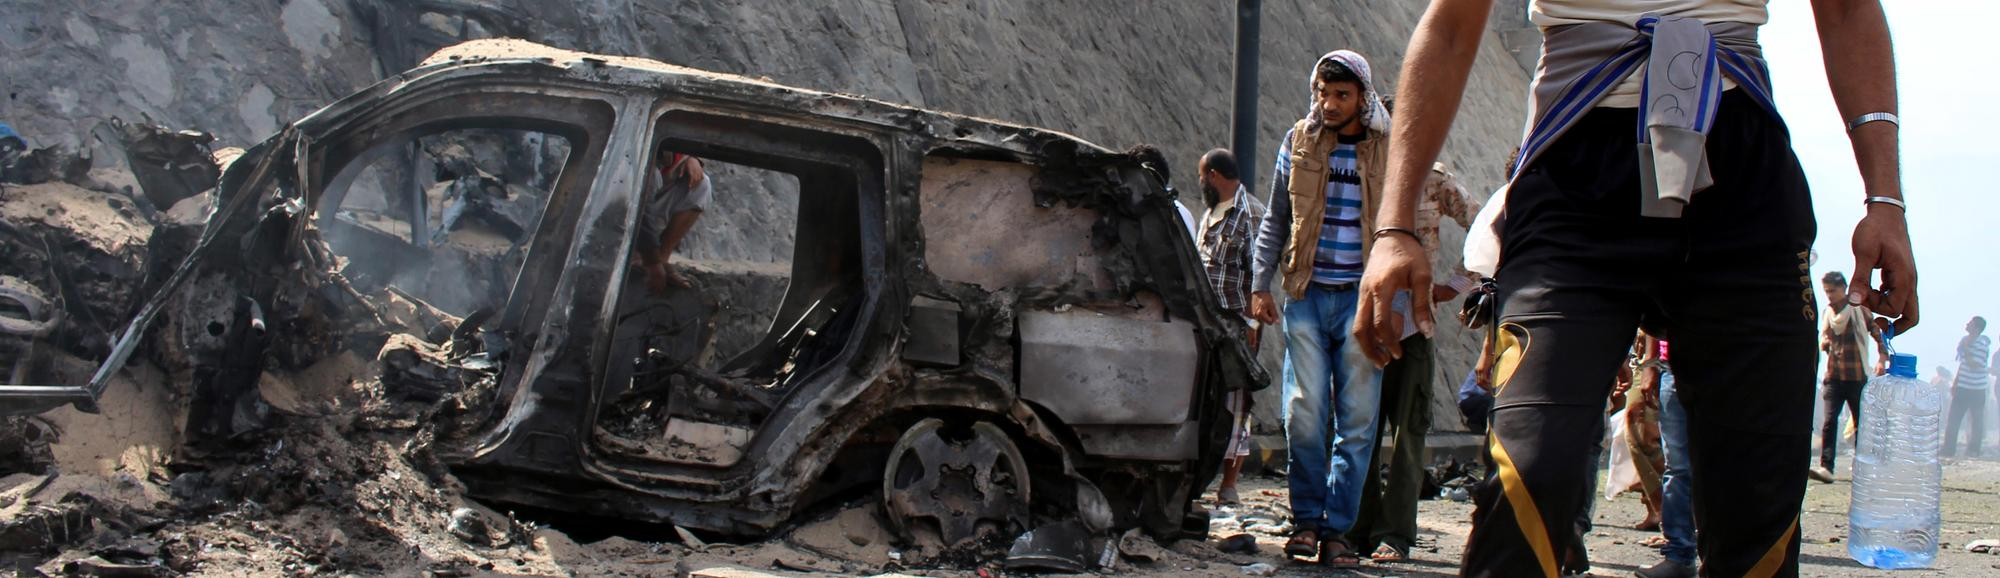 islamic-state-claims-car-bomb-attack-that-killed-governor-of-aden-in-yemen-1449420270